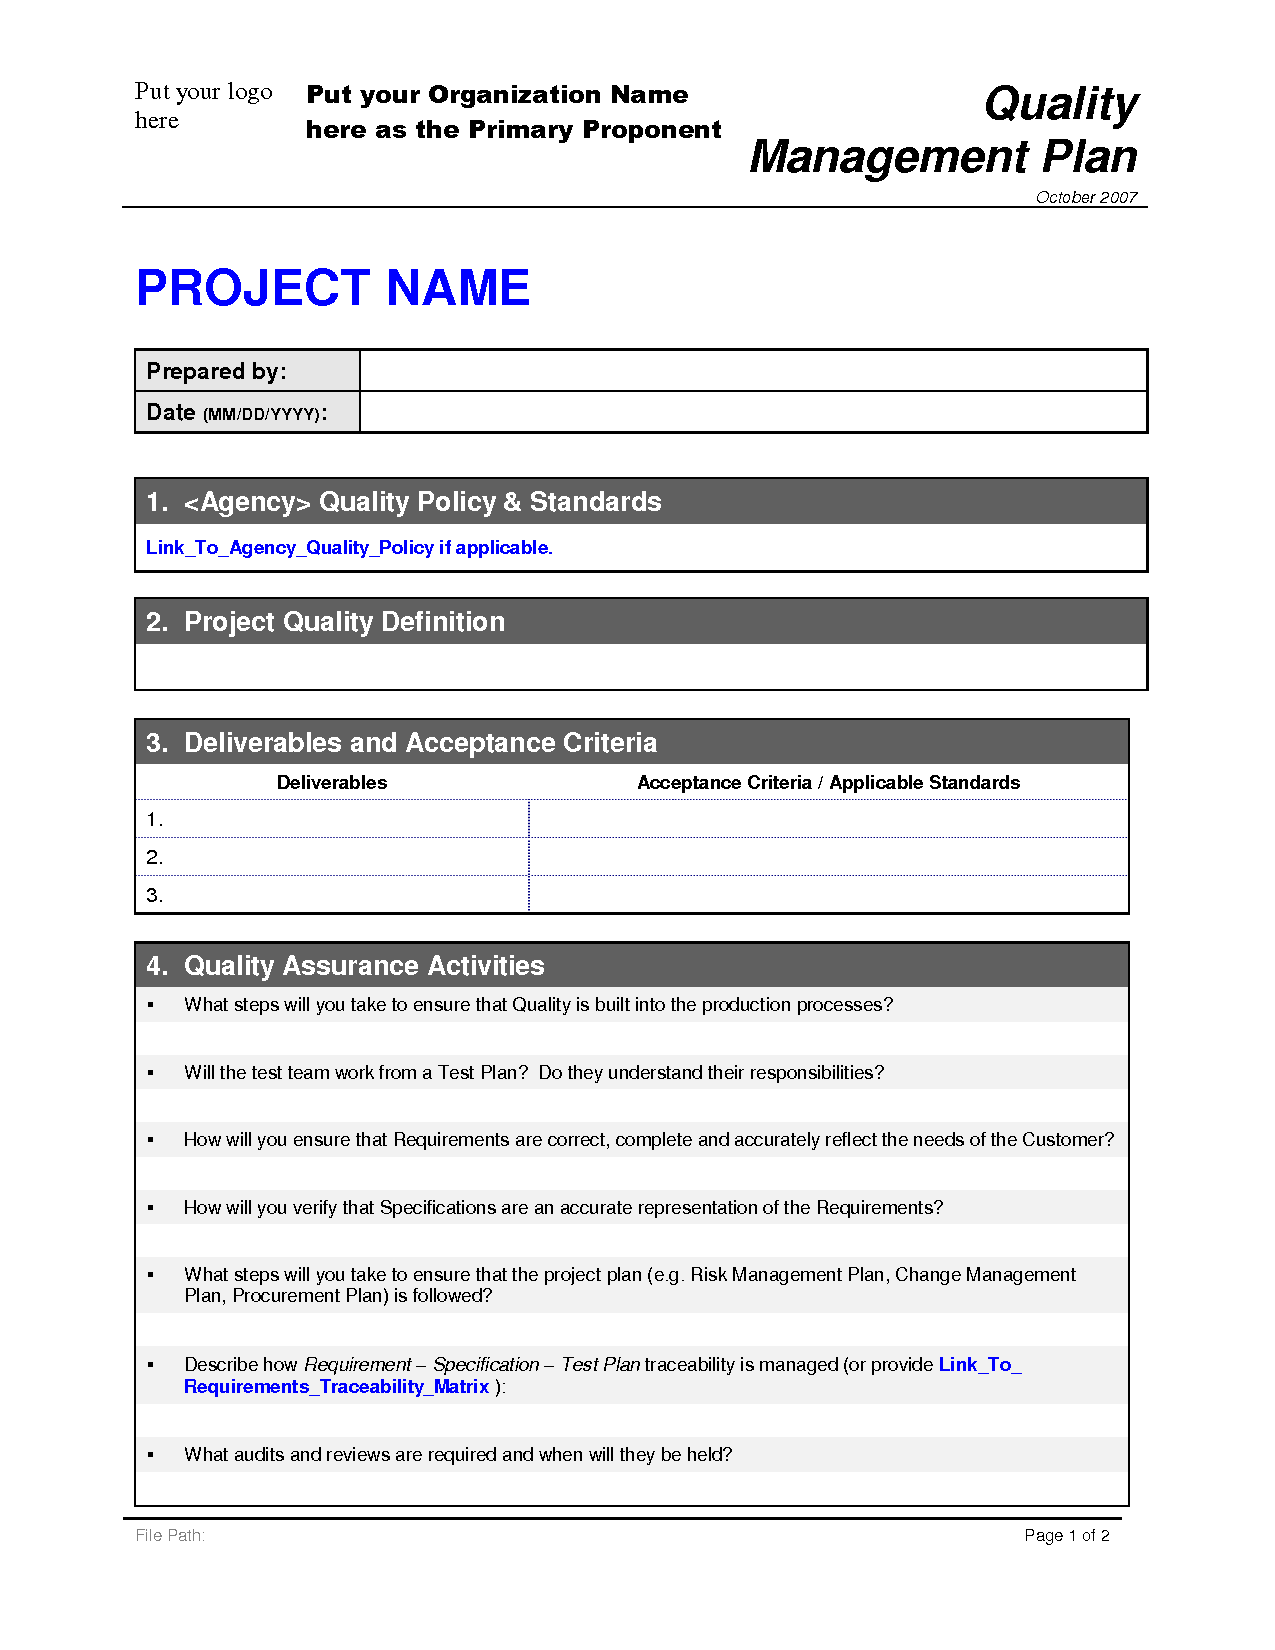 Project Management Schedule Example Quality Management Plan